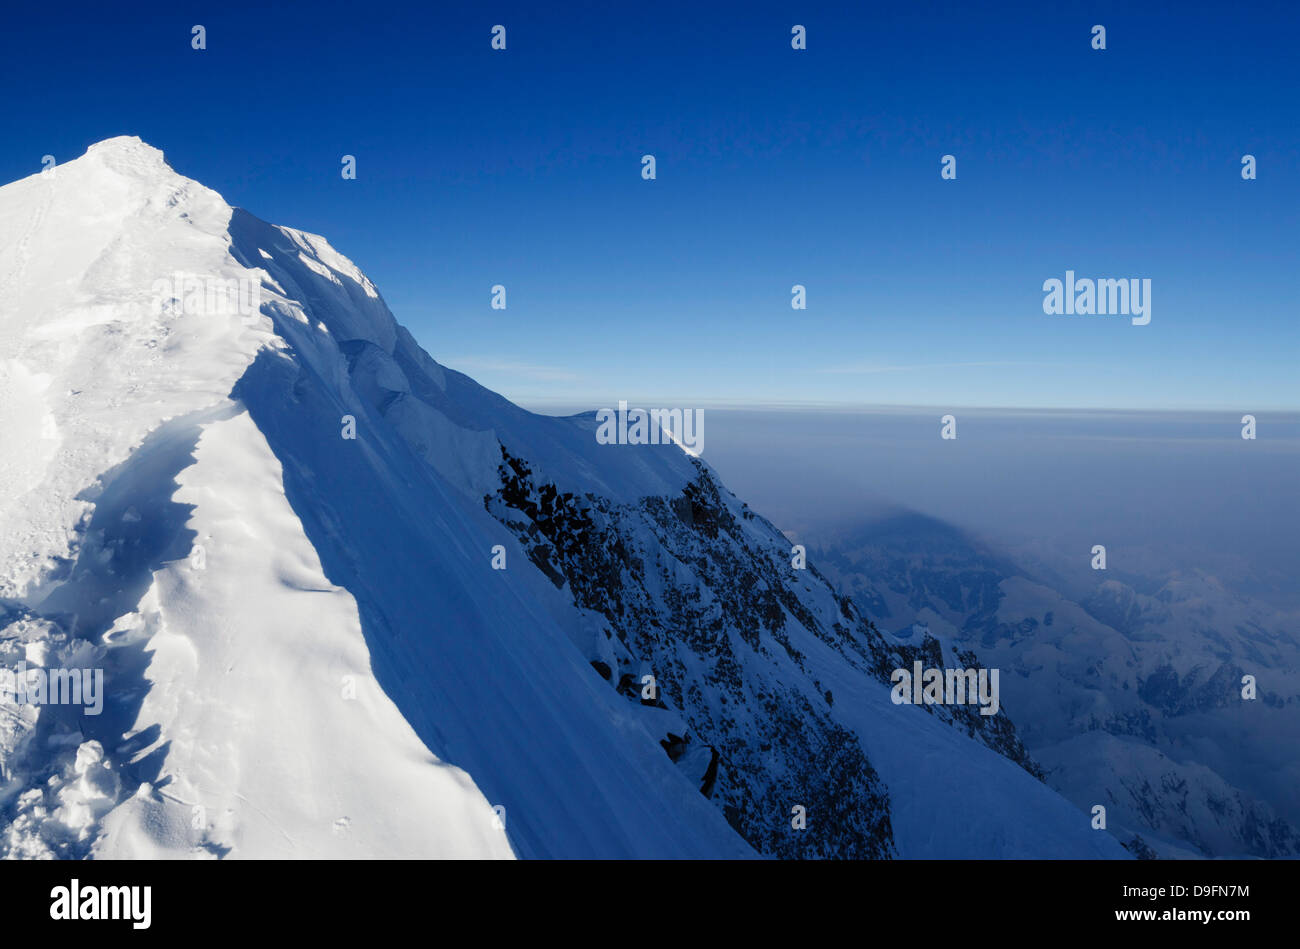 Crête du sommet, trek sur le mont McKinley, 6194m, le parc national Denali, Alaska, USA Photo Stock